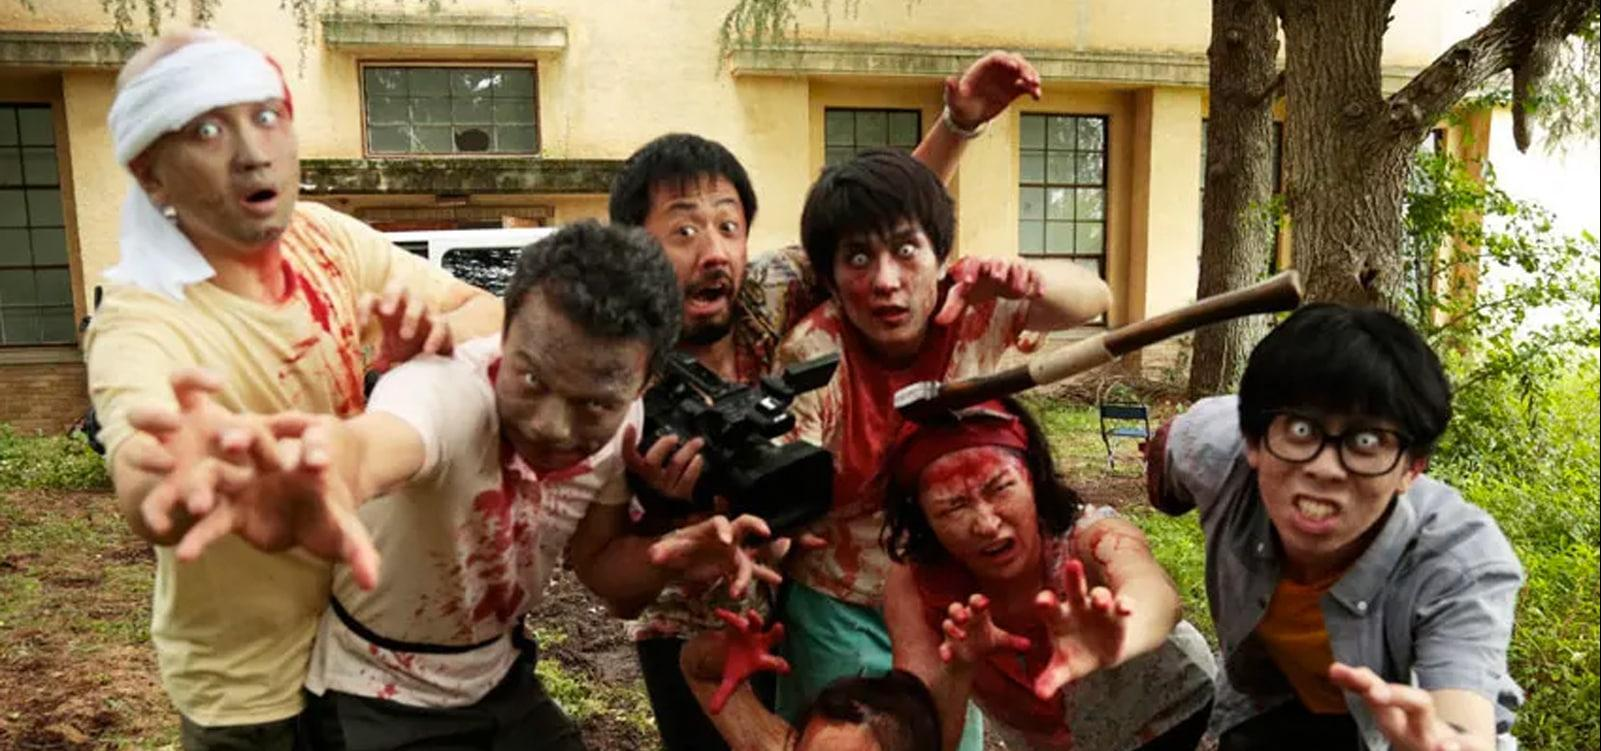 Director Higurashi (Takayuki Hamatsu), center, surrounded by the zombified cast of One Cut of the Dead.